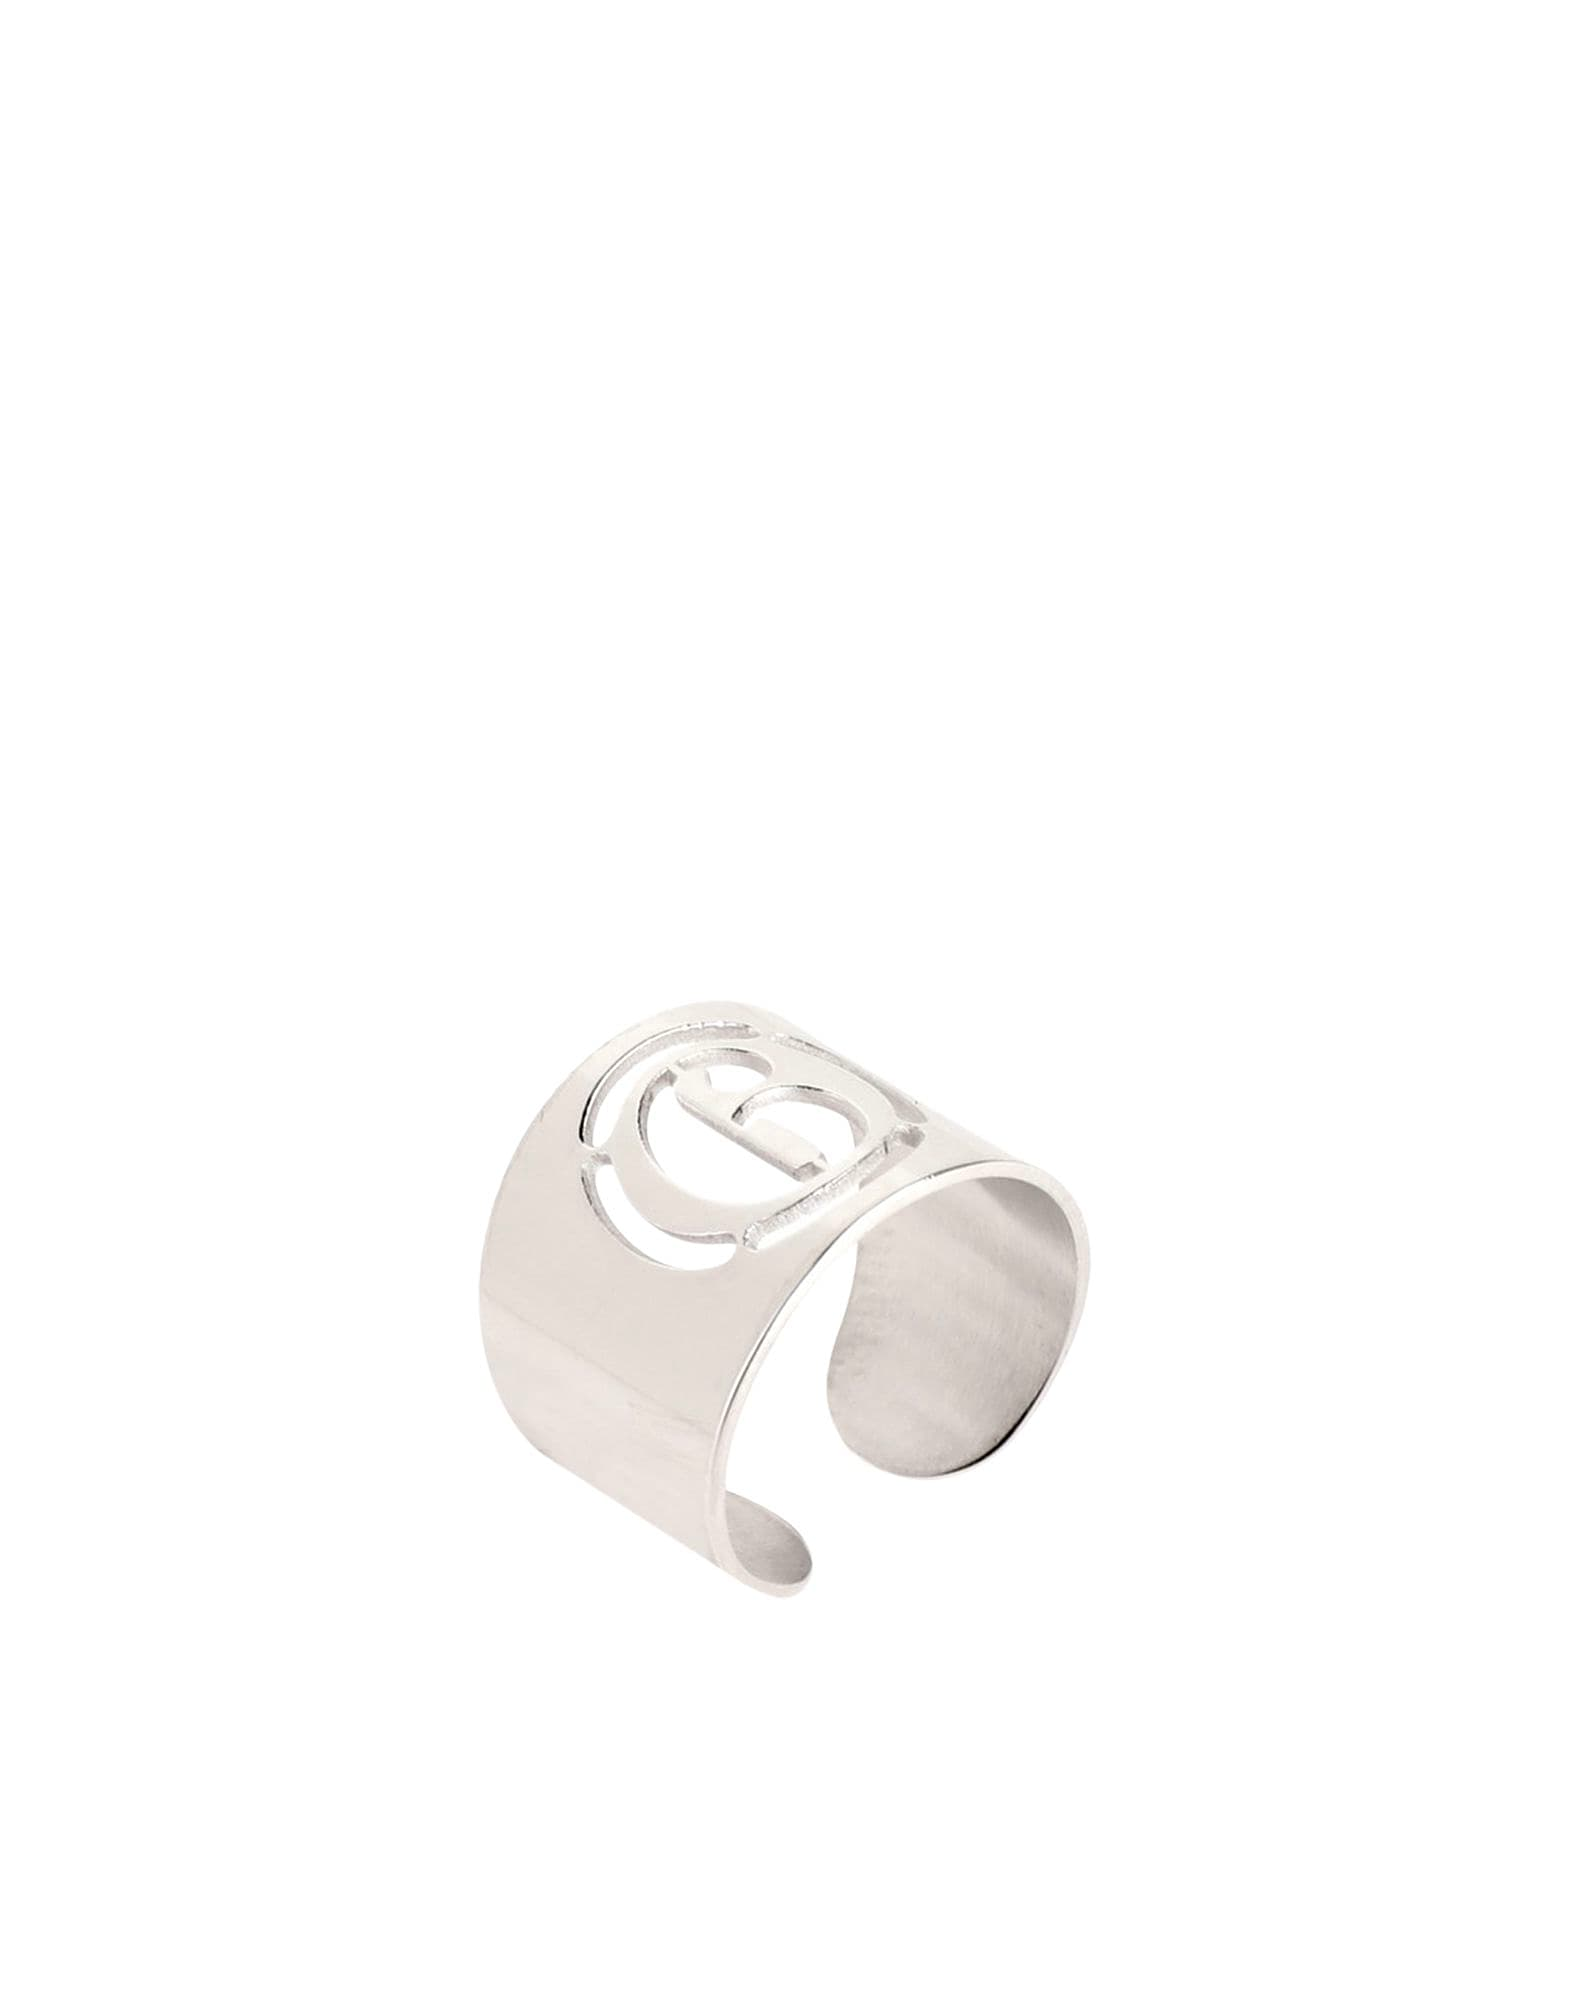 ring by MM6 MAISON MARGIELA